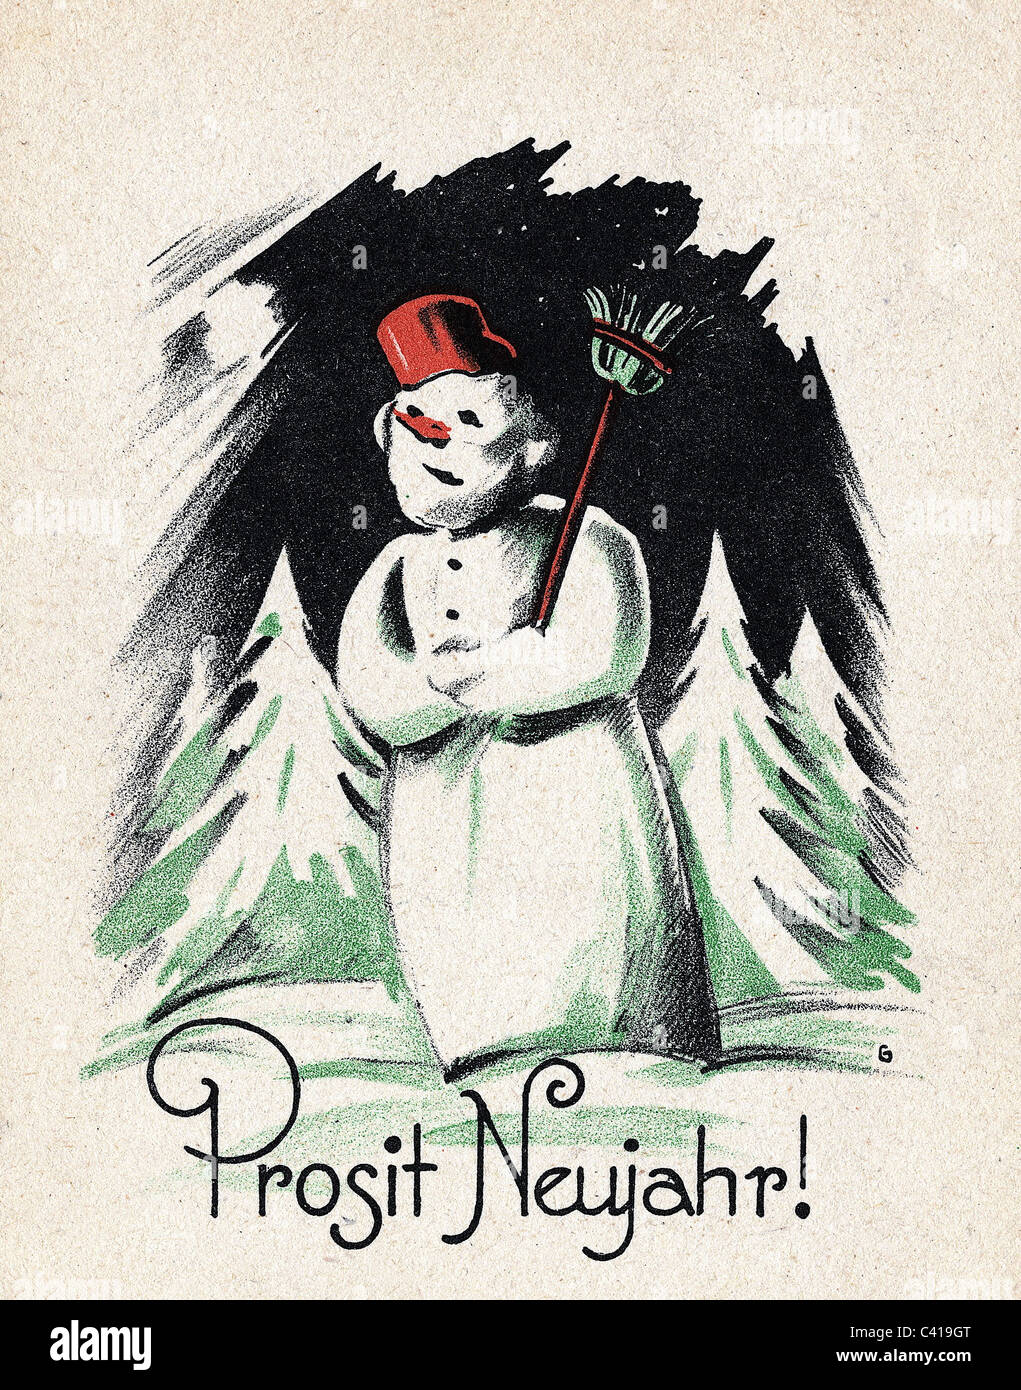 festivity, New Year, greetings card, 1947, Additional-Rights-Clearences-NA - Stock Image